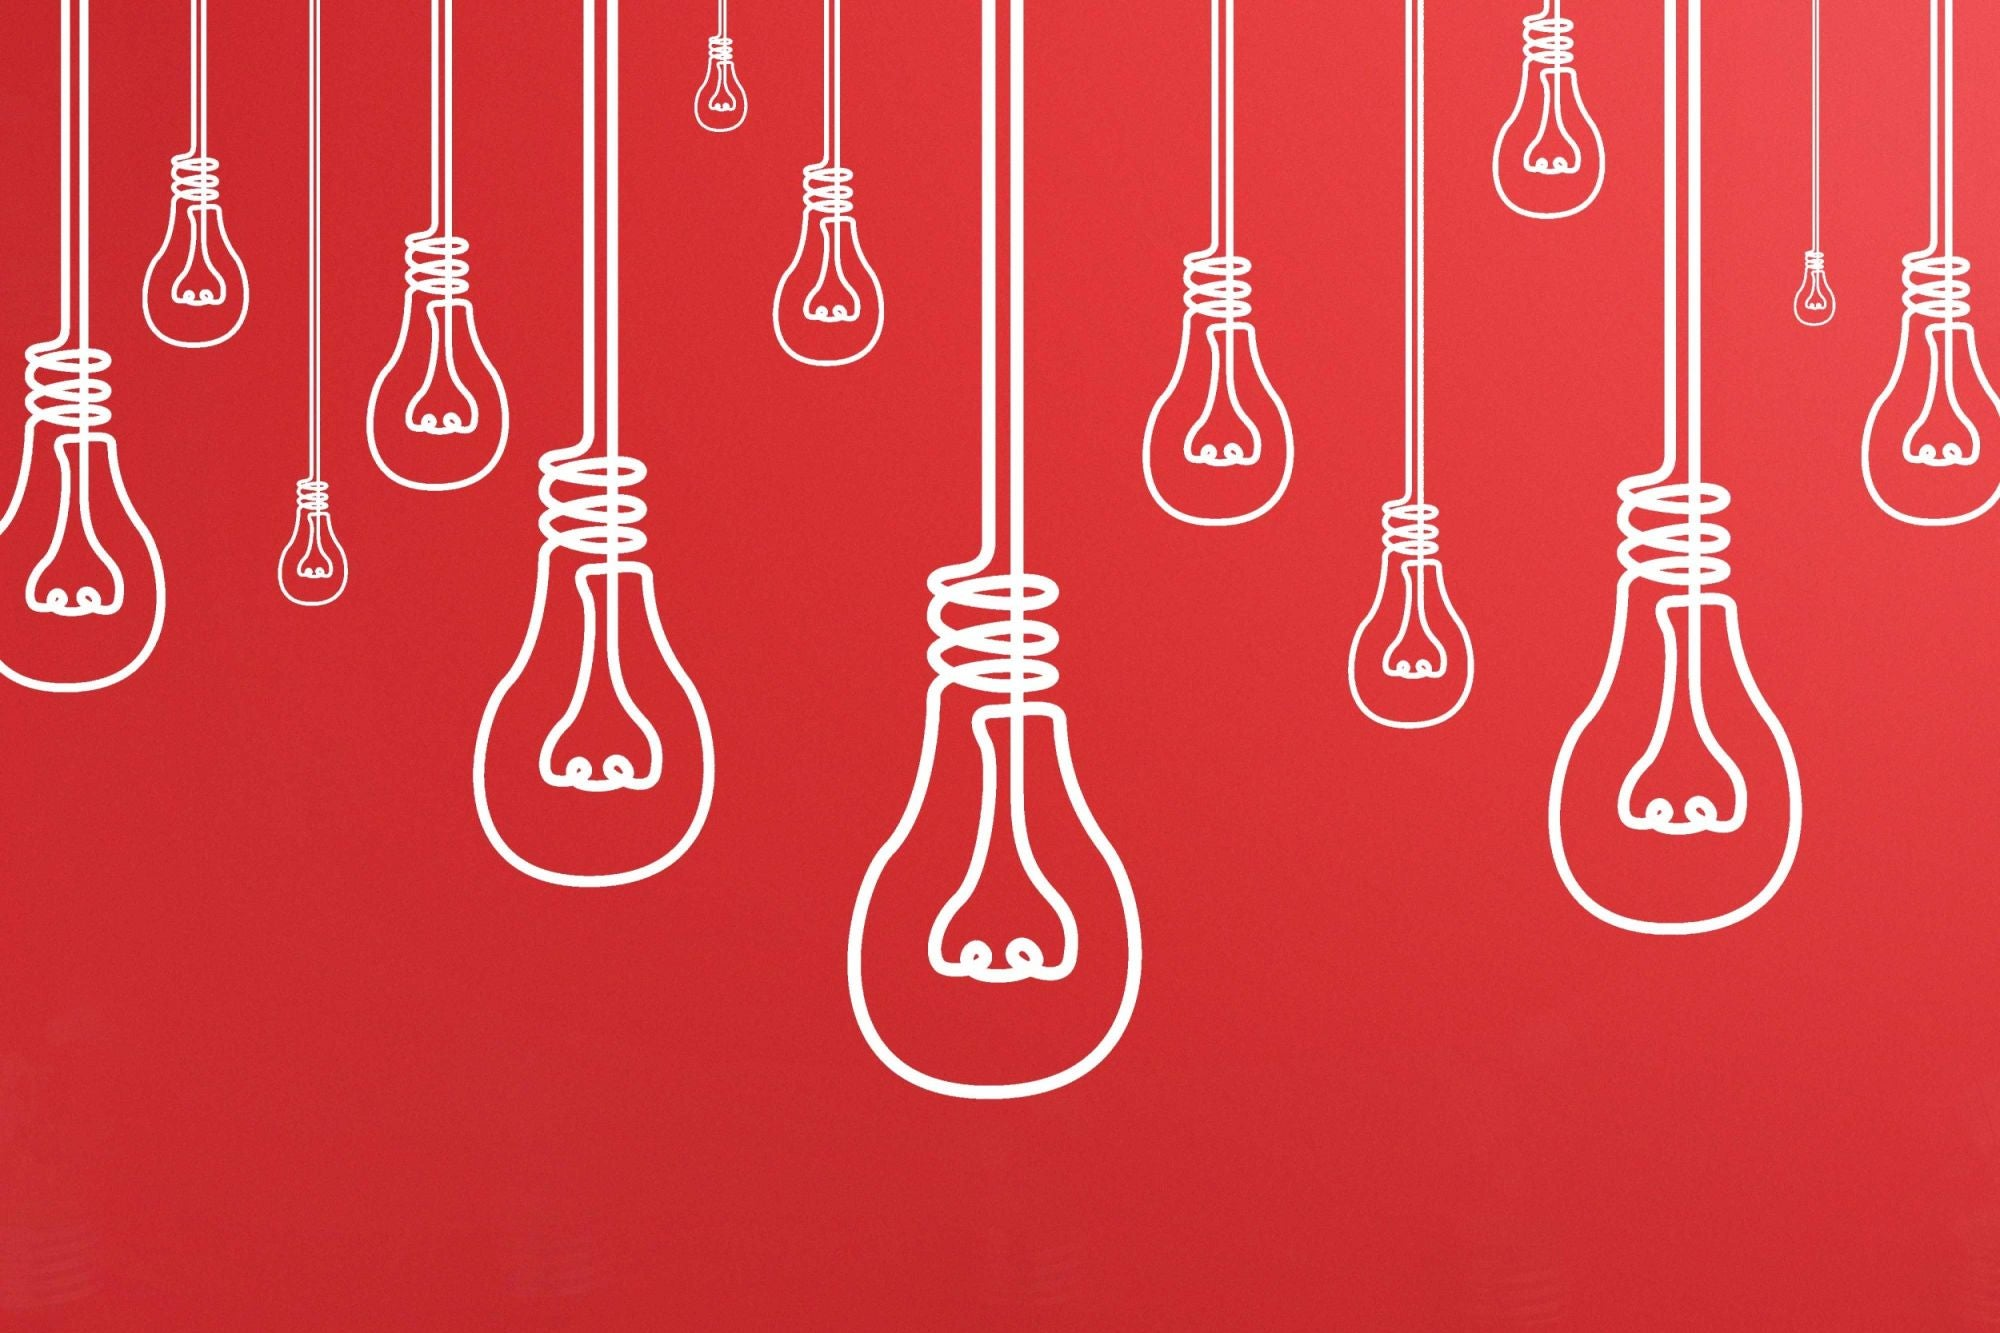 Citi Small Business: 300 Examples Of Business Ideas To Help